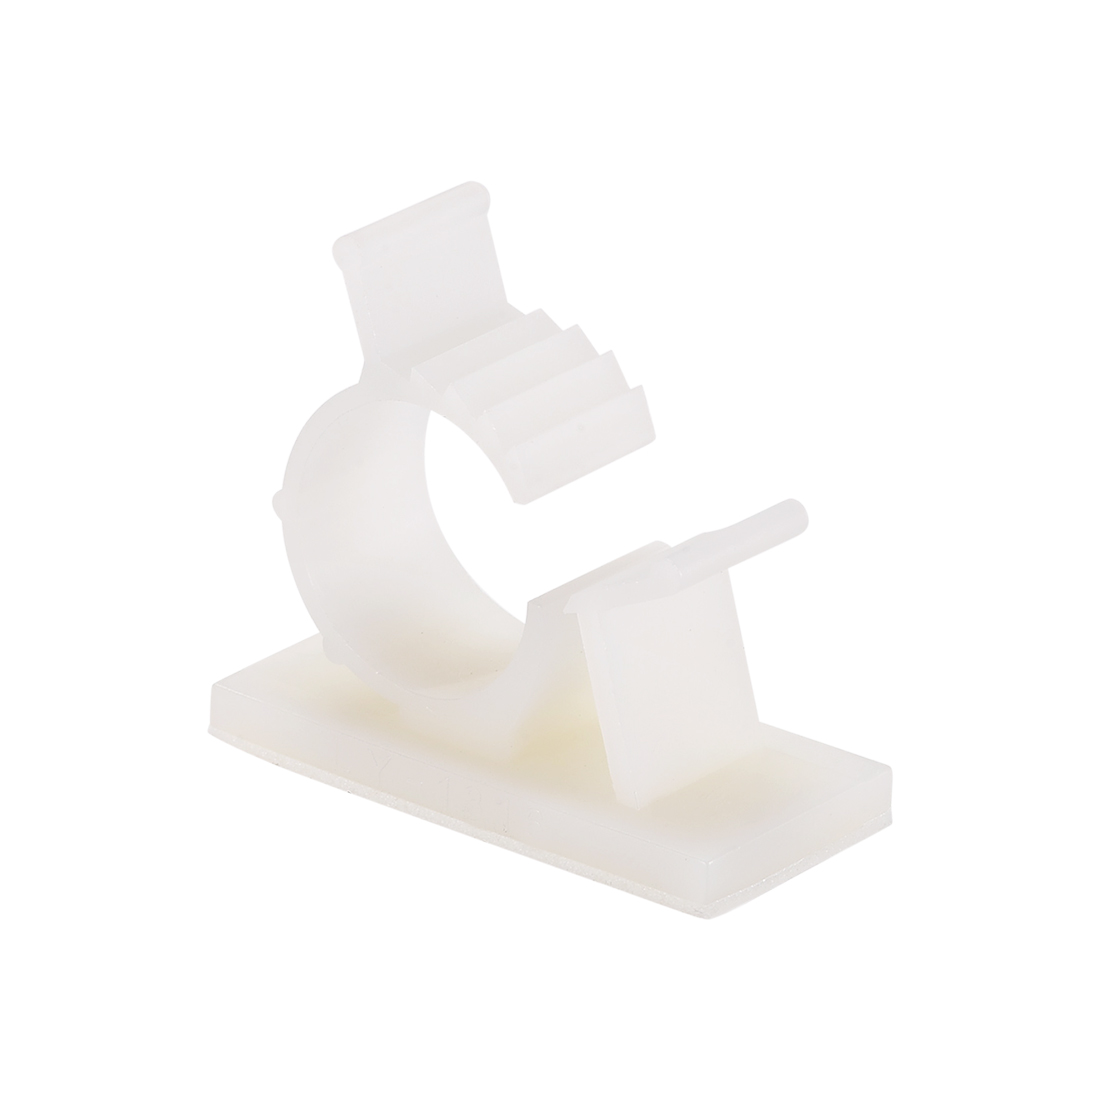 Adjustable White Cable Clips Buckle Adhesive Base for 12.6-15.4mm Cords 30Pcs